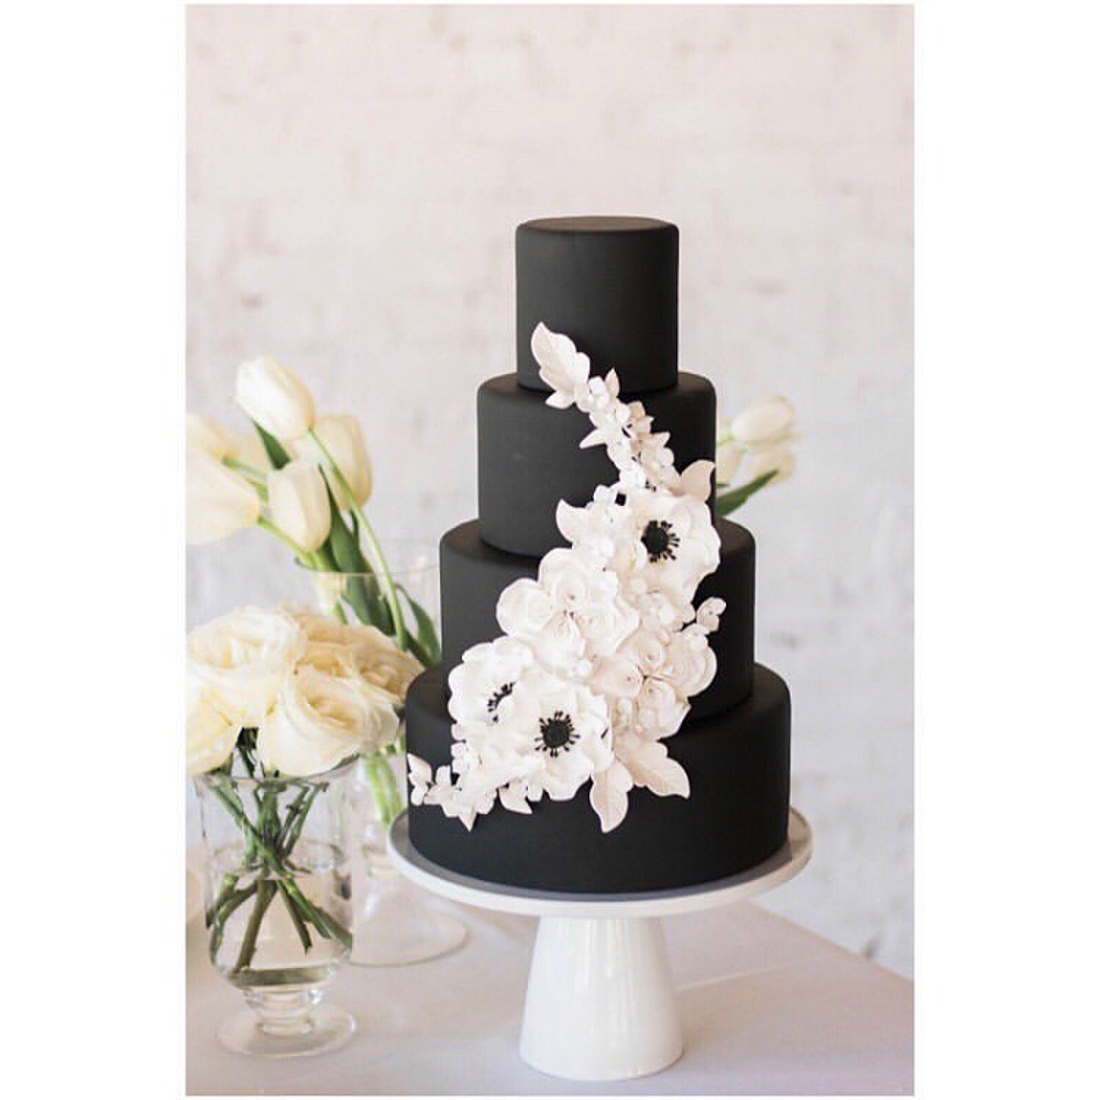 Black 4 tiered wedding cake with white sugar flowers on it.